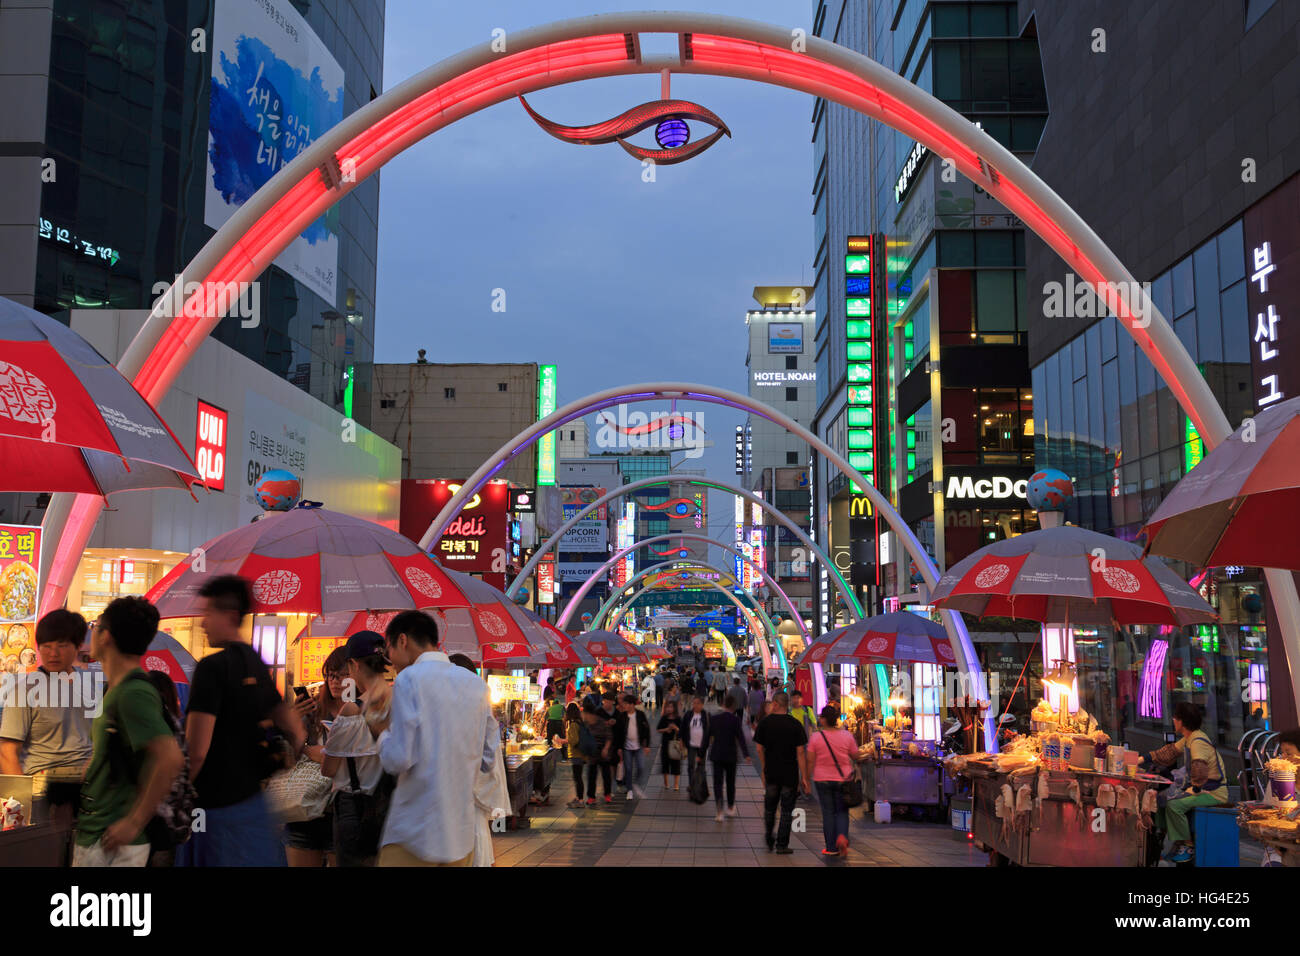 BIFF Square, Nampo District, Busan, South Korea, Asia - Stock Image